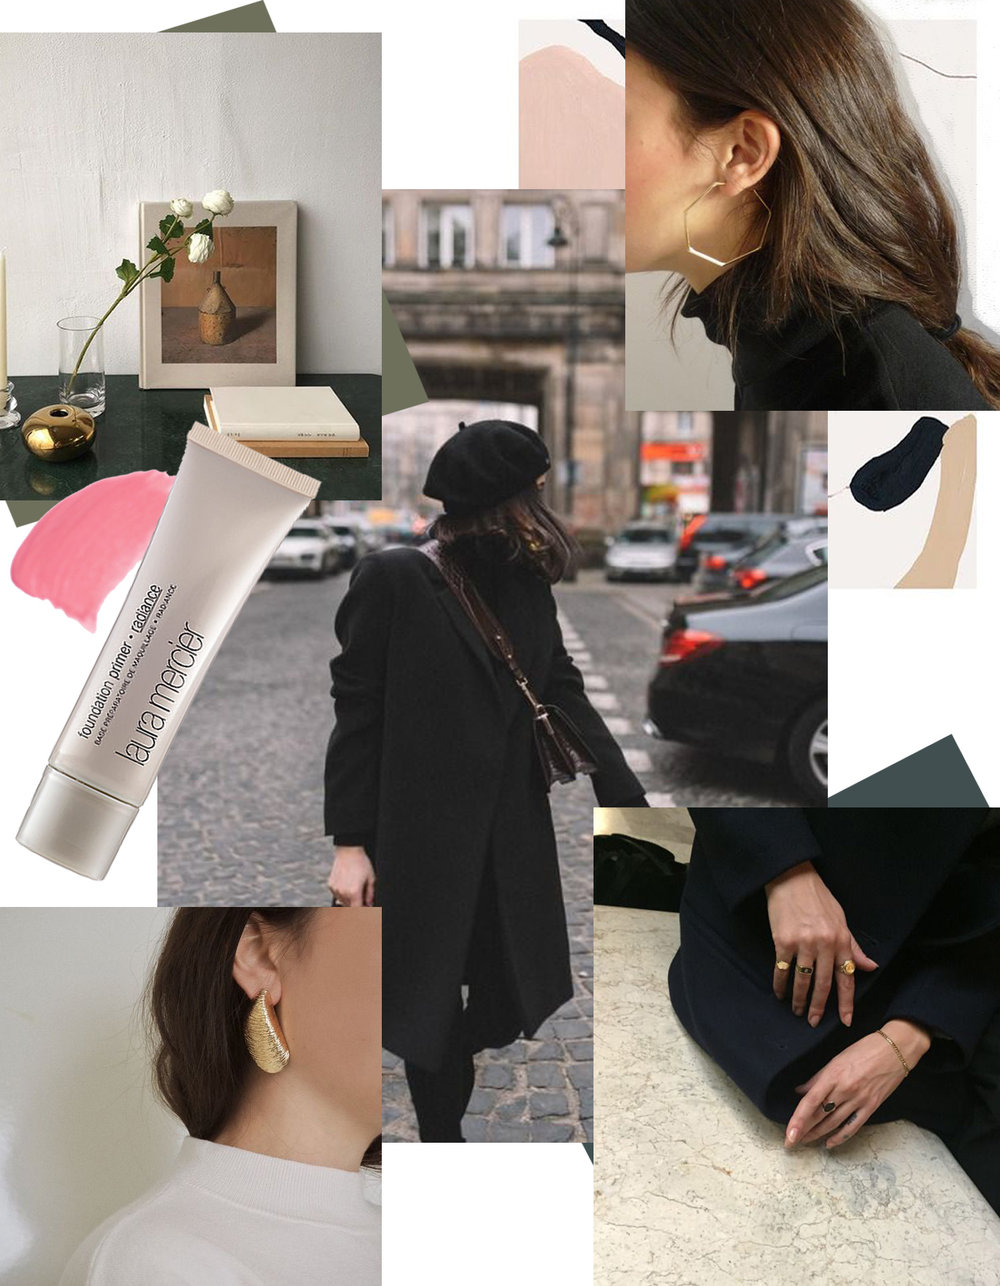 january_mood_board_laura-mercier-radiance-primer.jpg